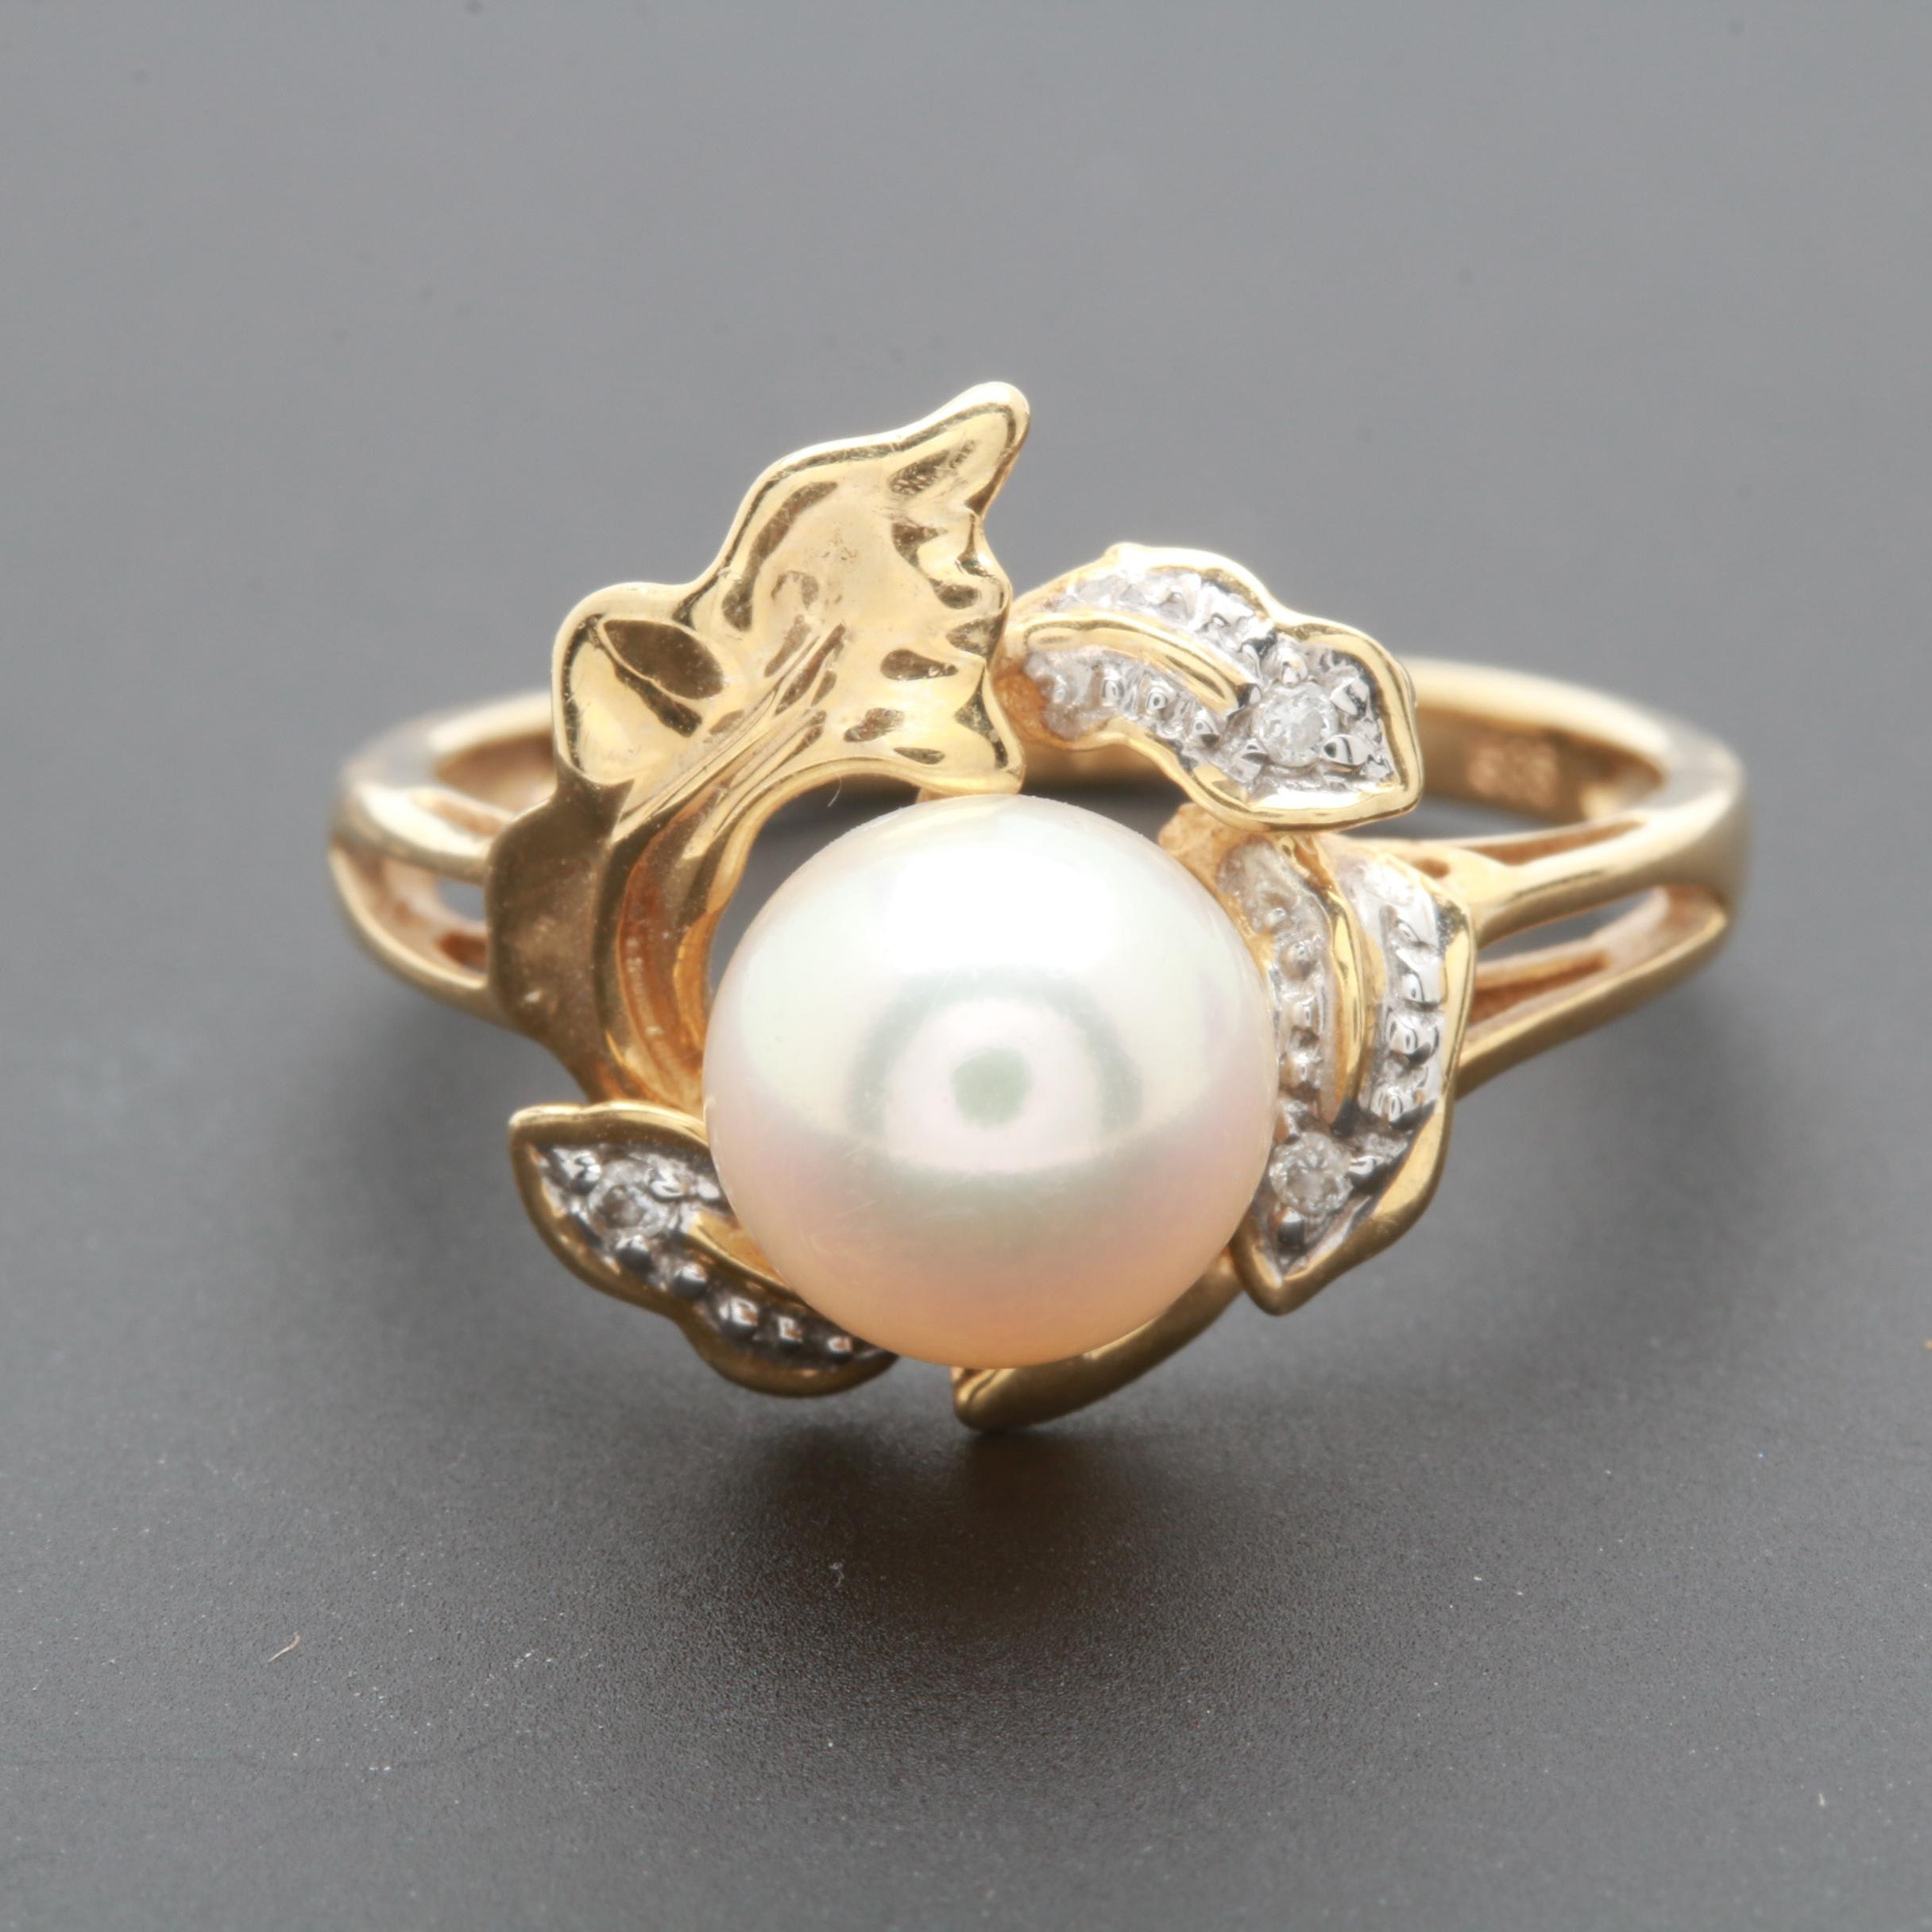 14K Yellow Gold Cultured Pearl and Diamond Ring with White Gold Accents